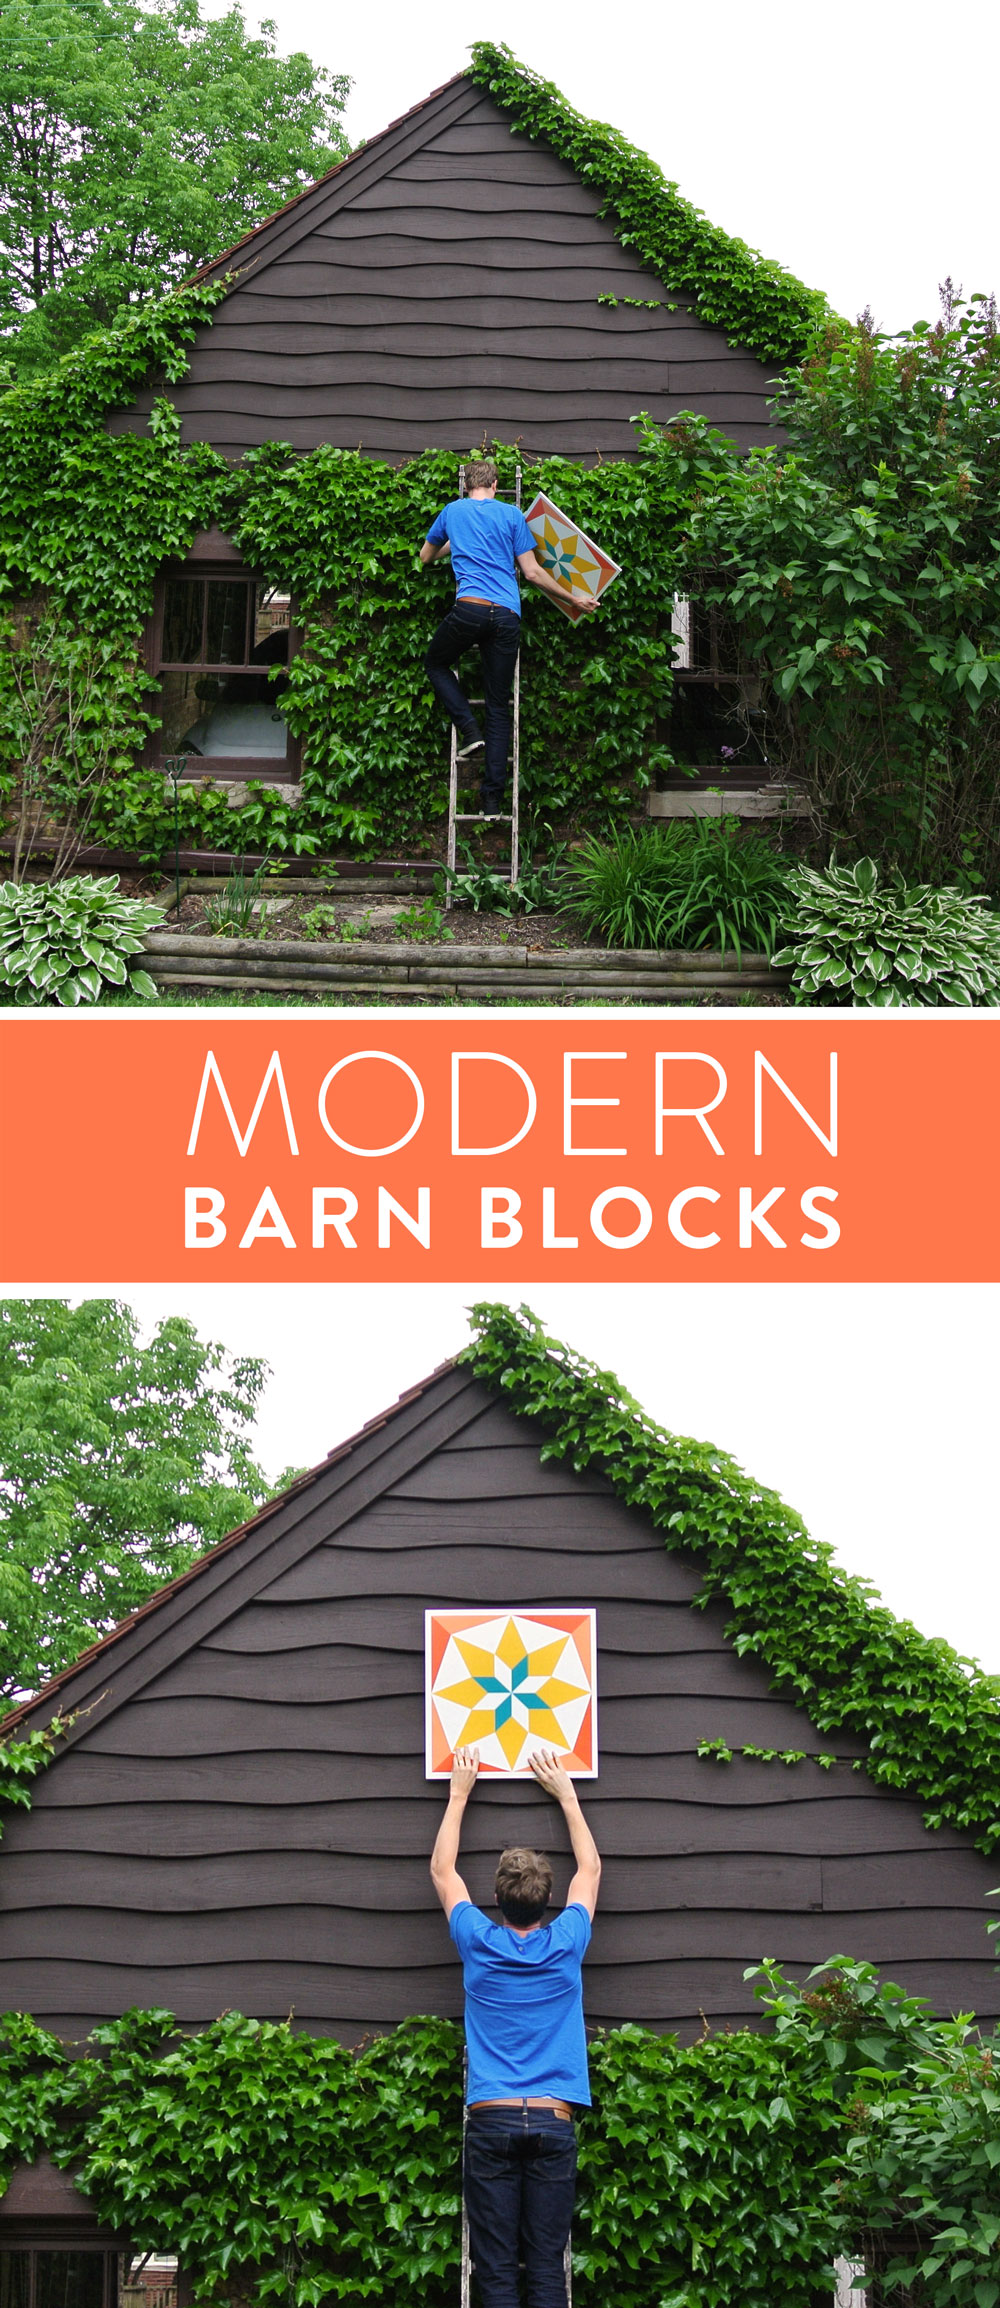 Barn-Blocks